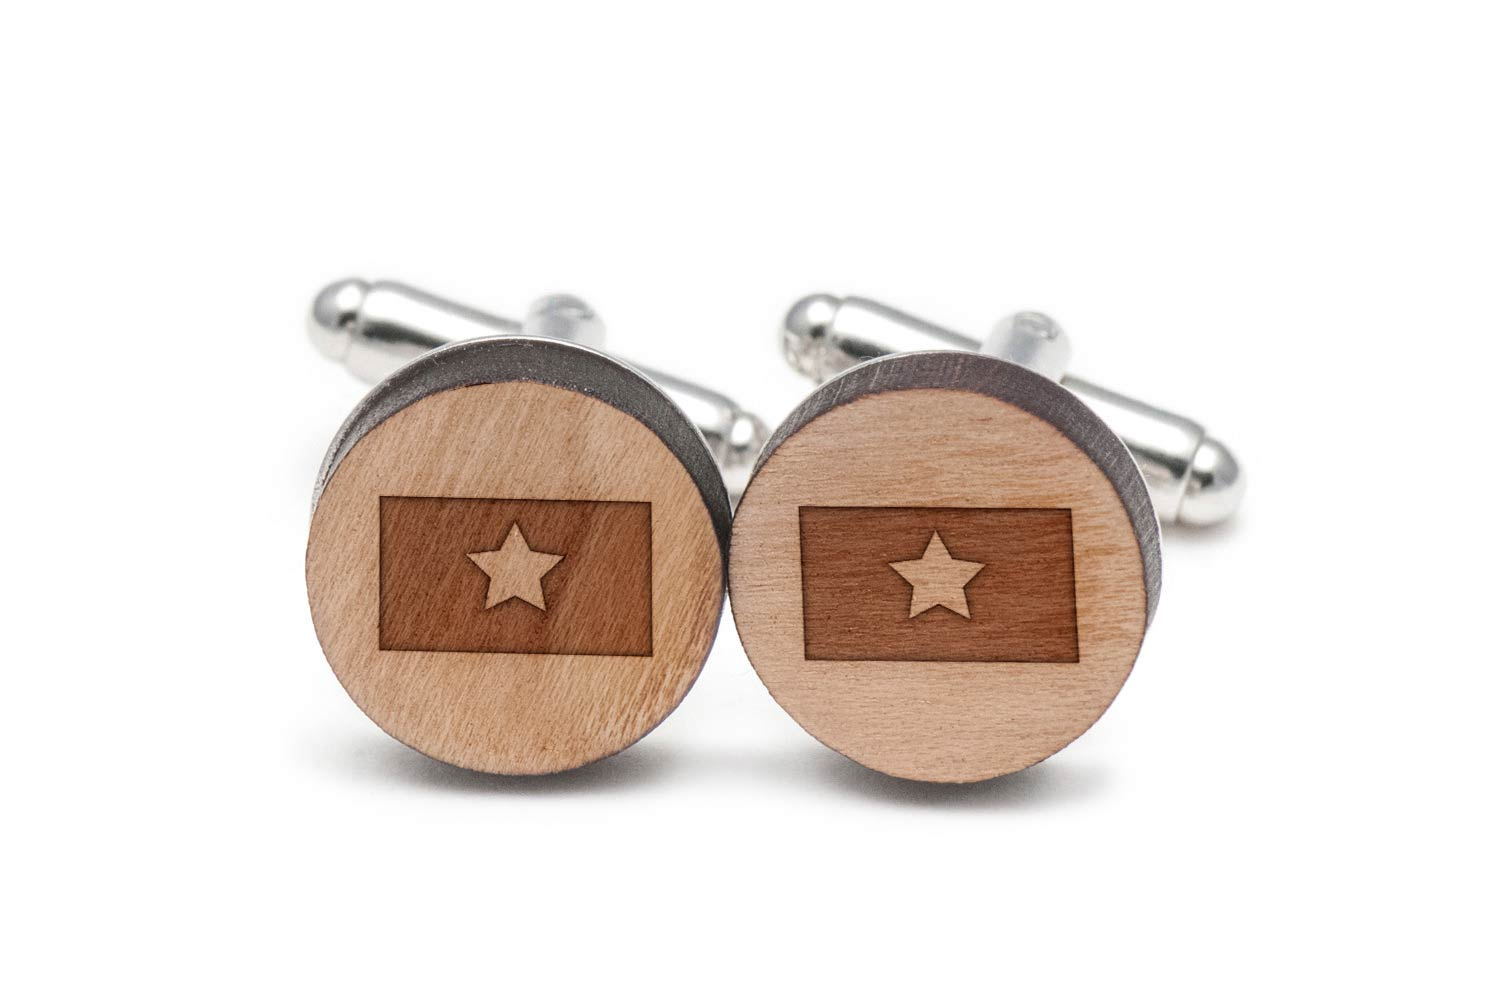 Vietnam Flag Cufflinks, Wood Cufflinks Hand Made in the USA by BigSpool Distributors